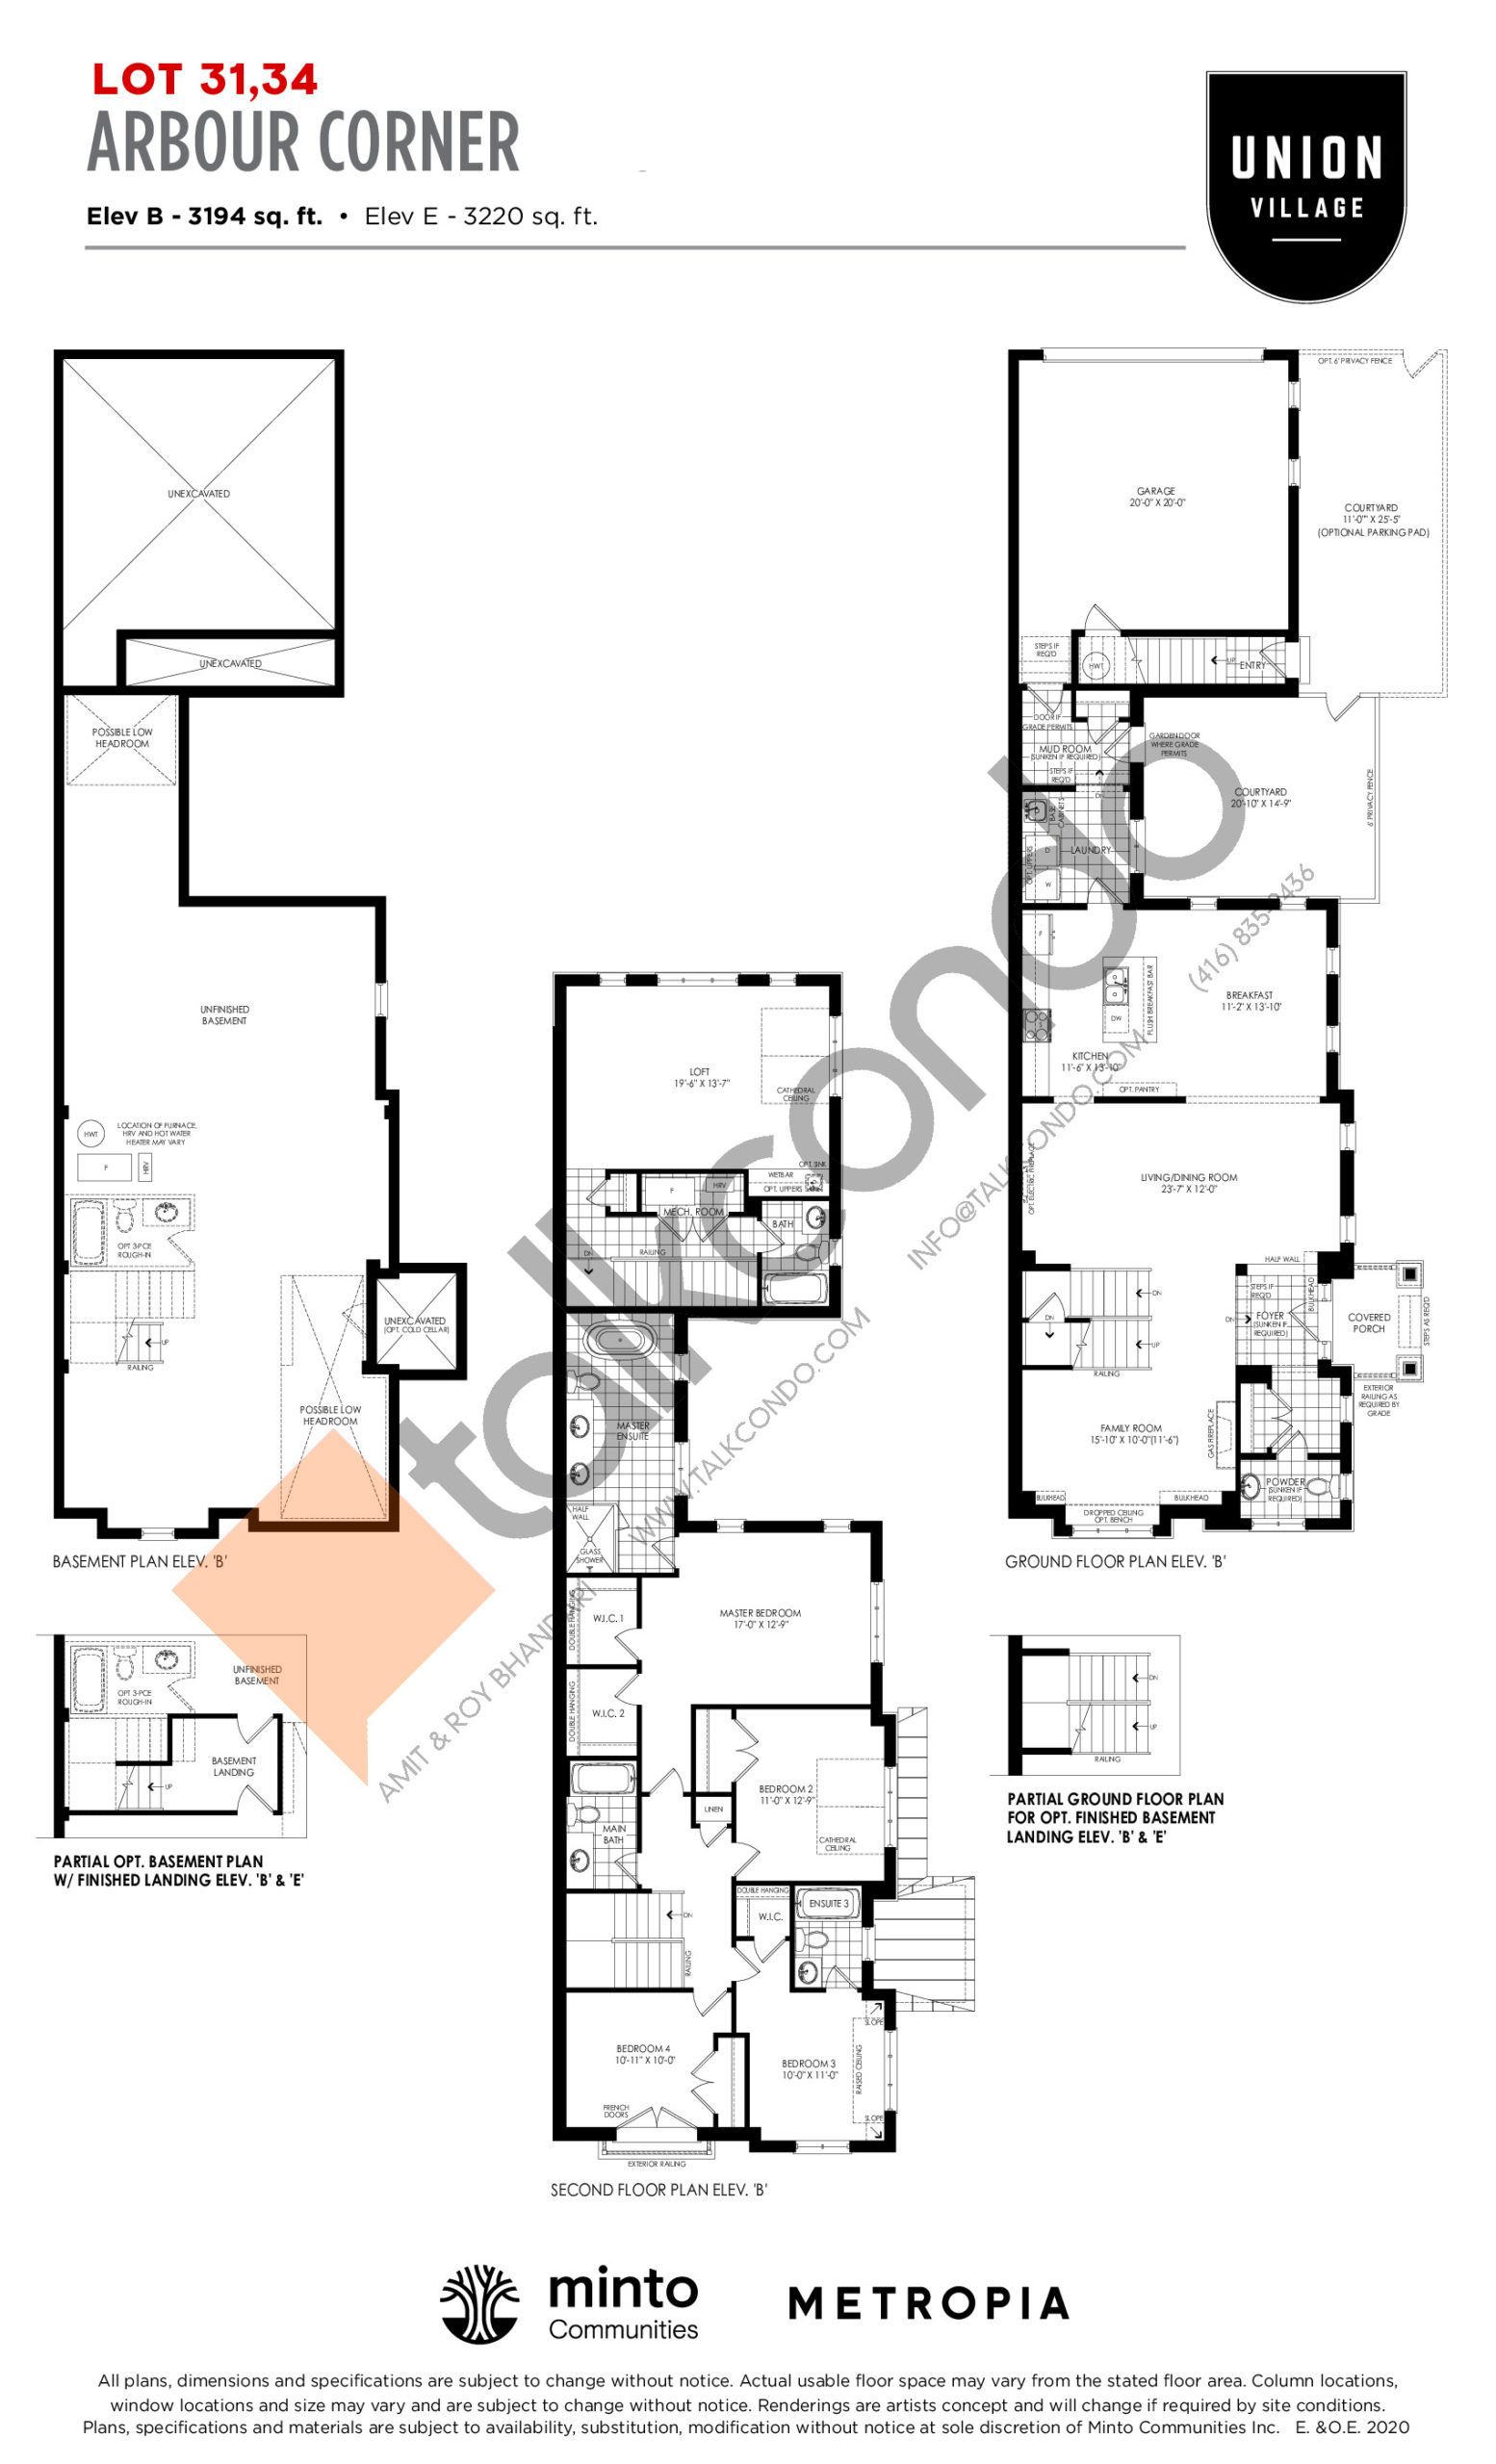 Arbour Corner Elev B - The Rosewood Collection Floor Plan at Union Village - 3194 sq.ft